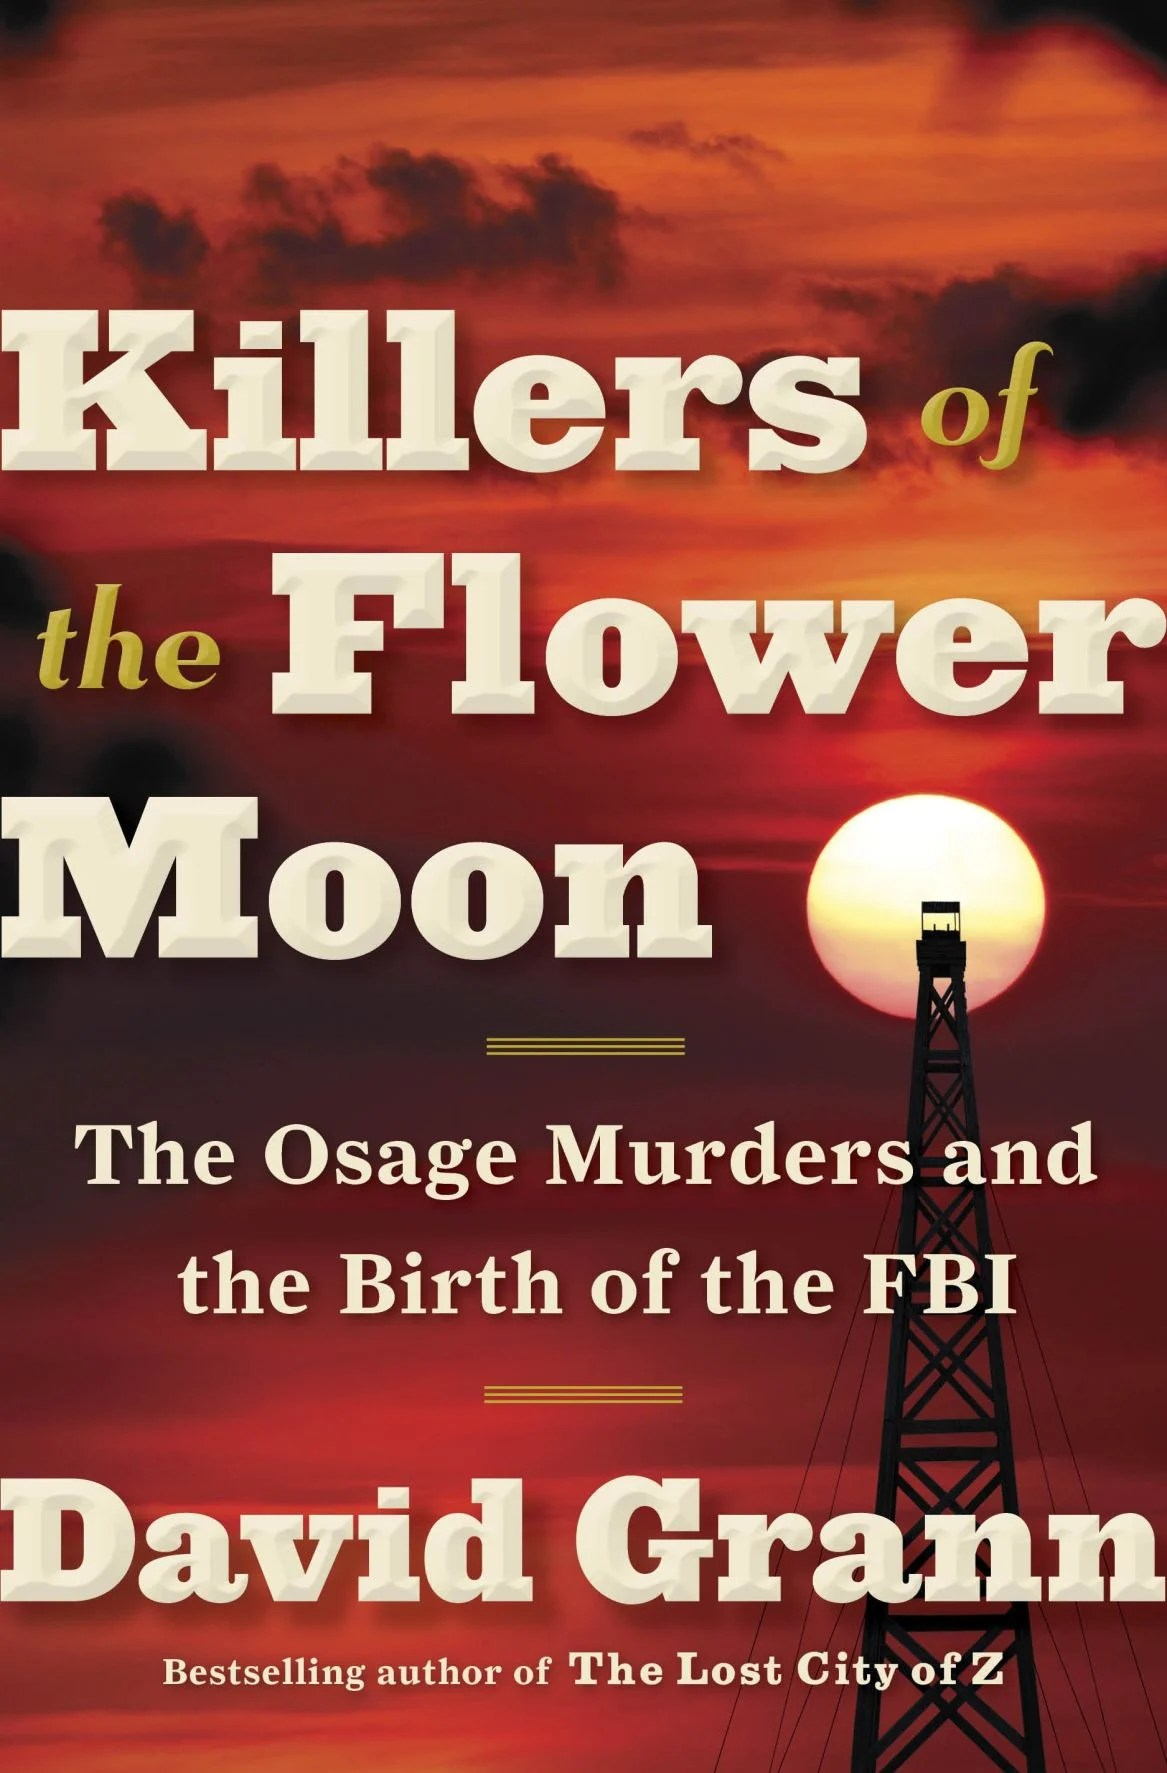 Review Killers of the Flower Moon  Mo Books  emissouriancom